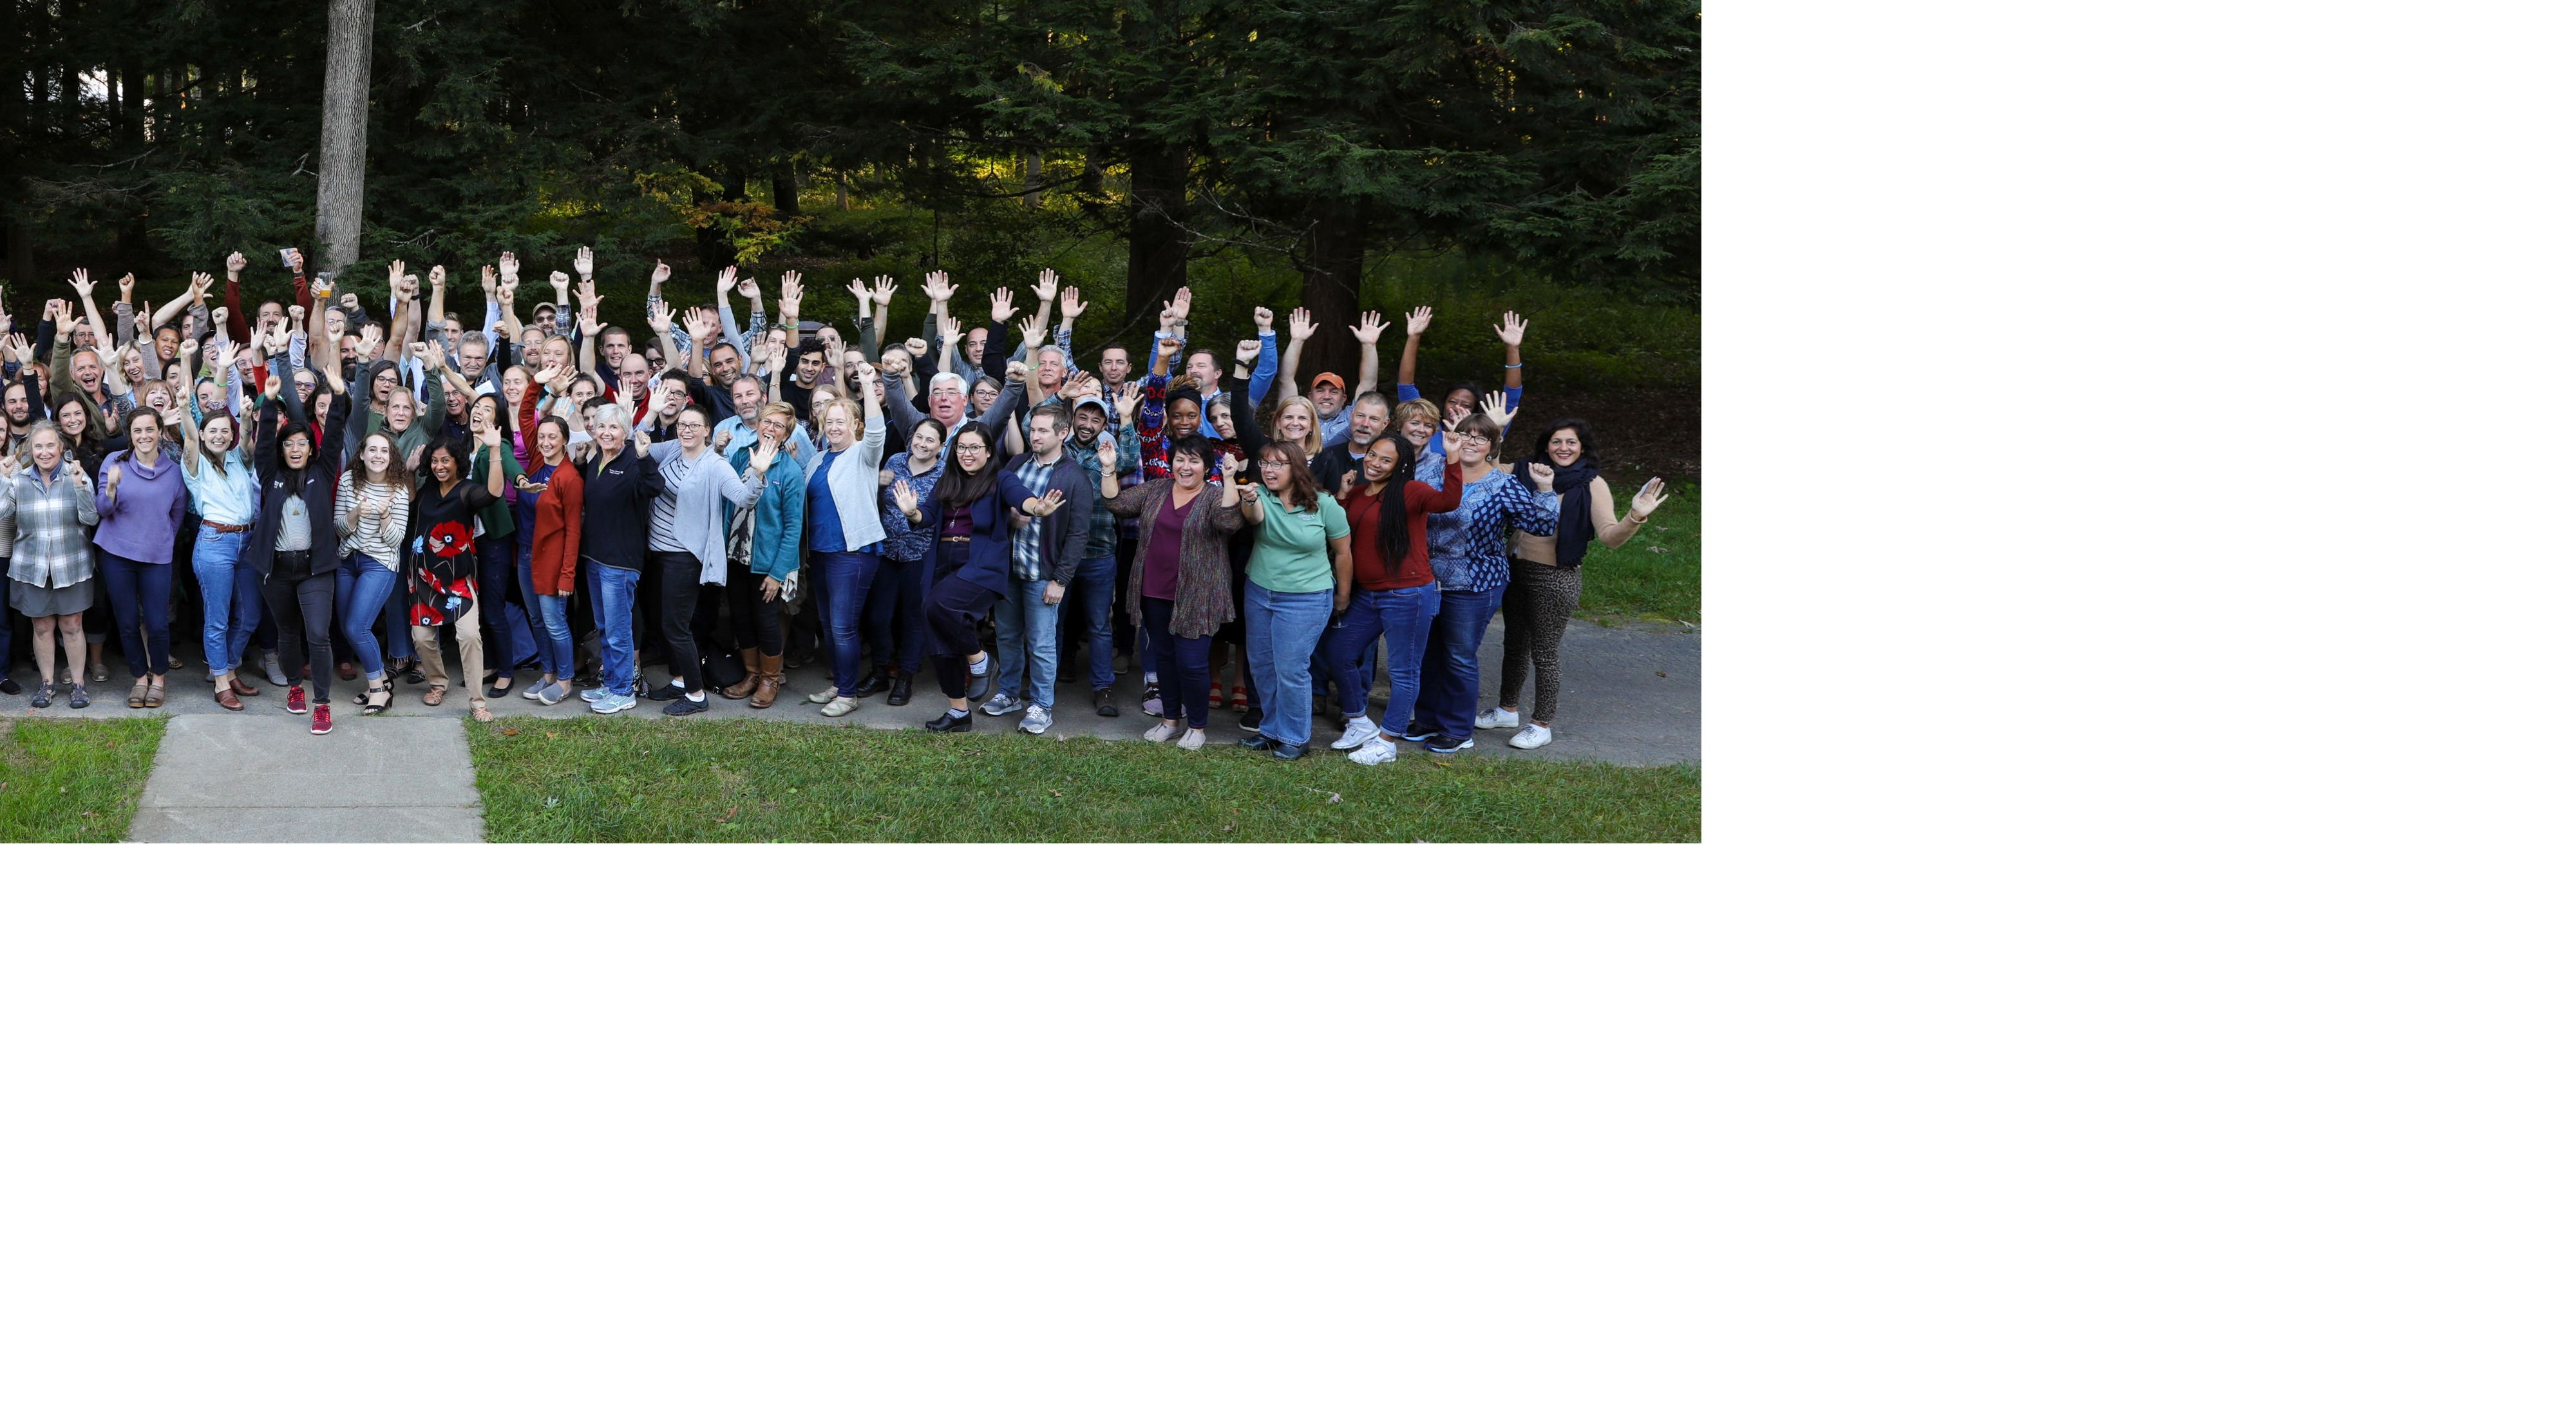 Group picture of TNC staff in an outdoor setting smiling at camera with arms raised.